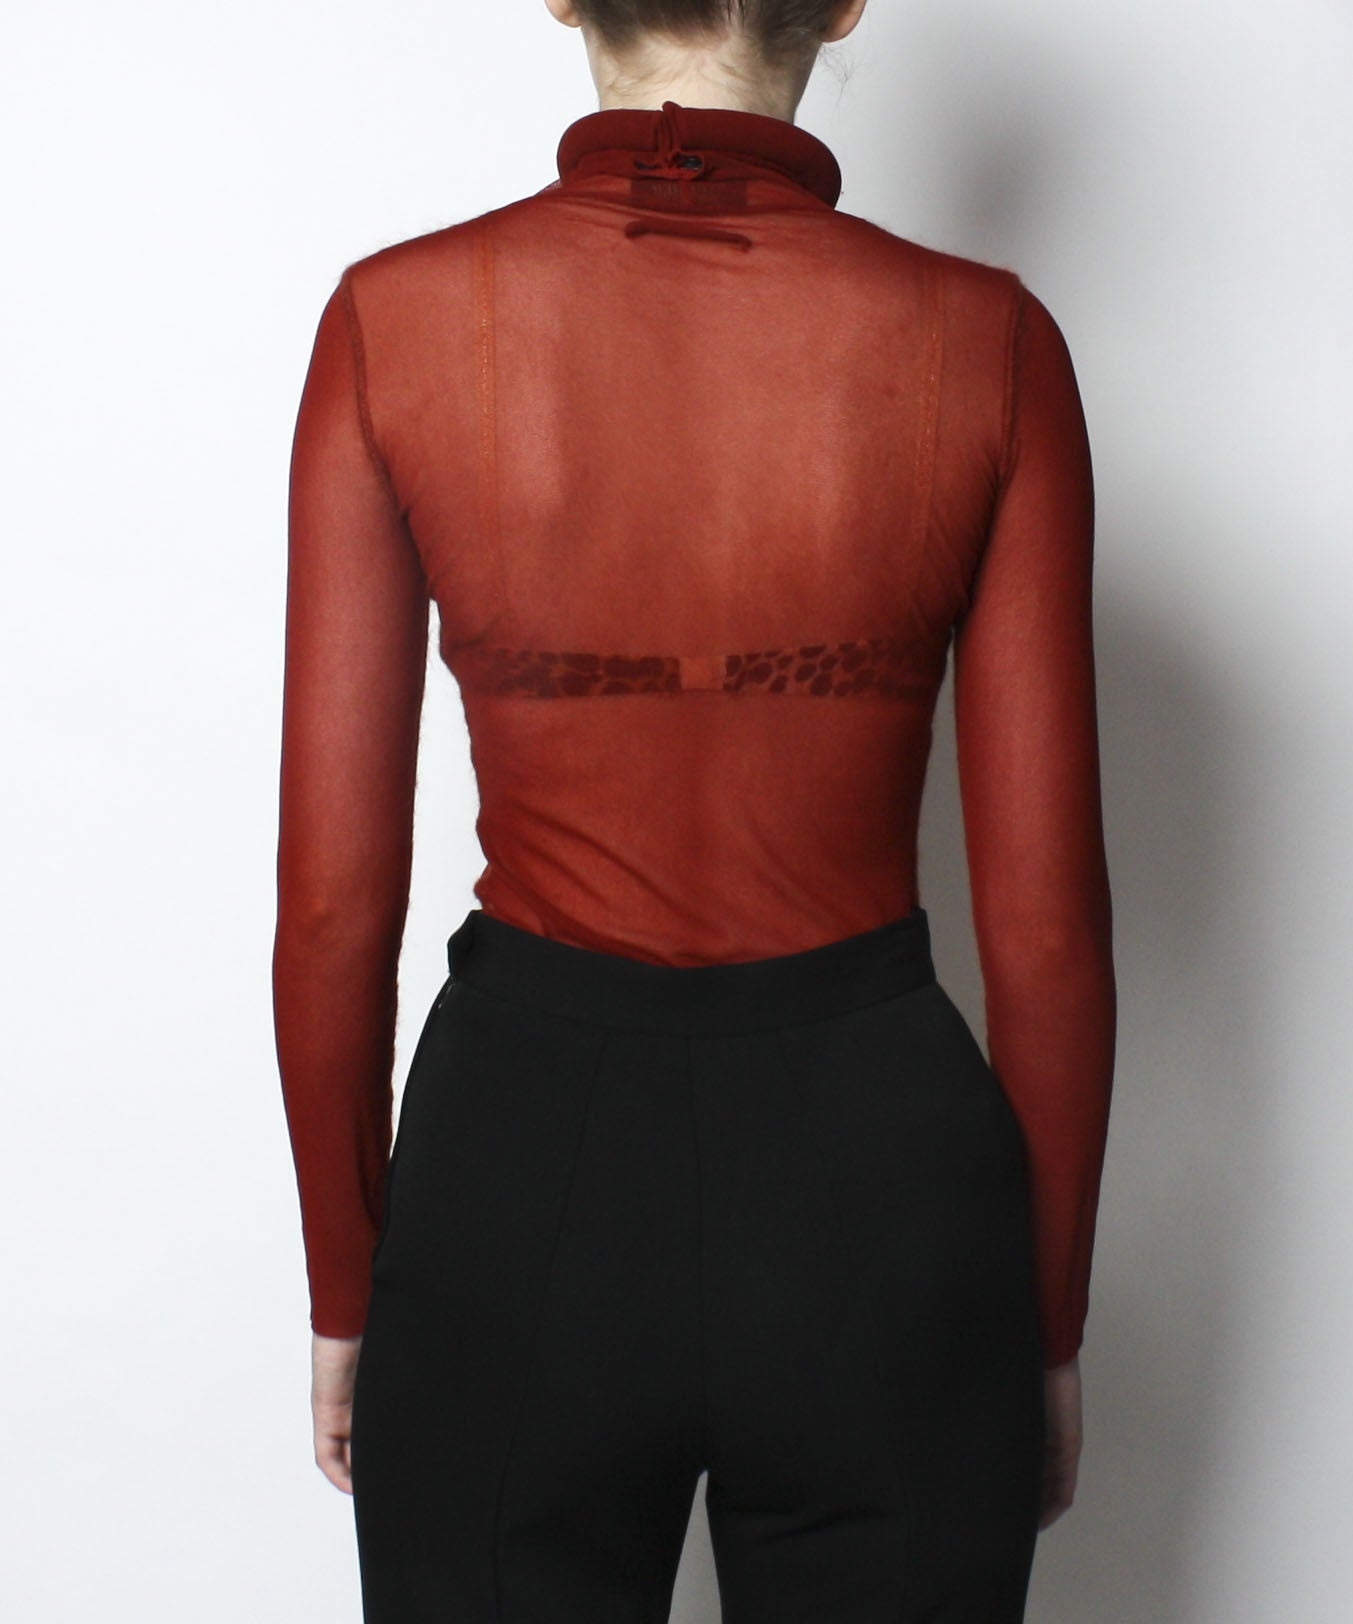 Jean Paul Gaultier Rust Mesh Top With Rolled Magnetic Turtle Neck - C.Madeleine's